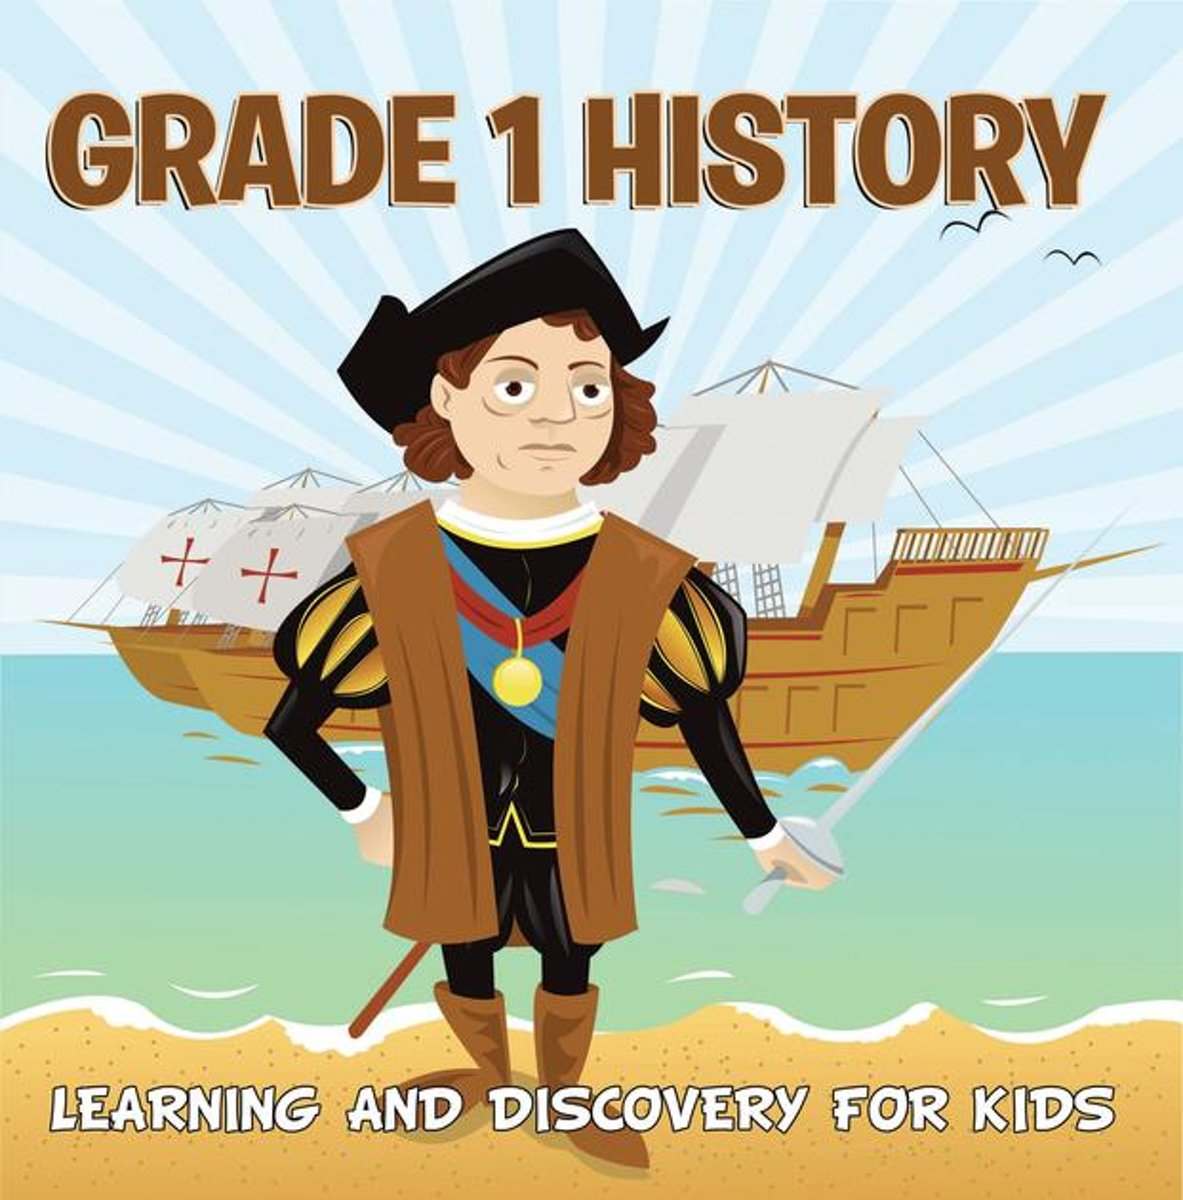 Grade 1 History: Learning And Discovery For Kids